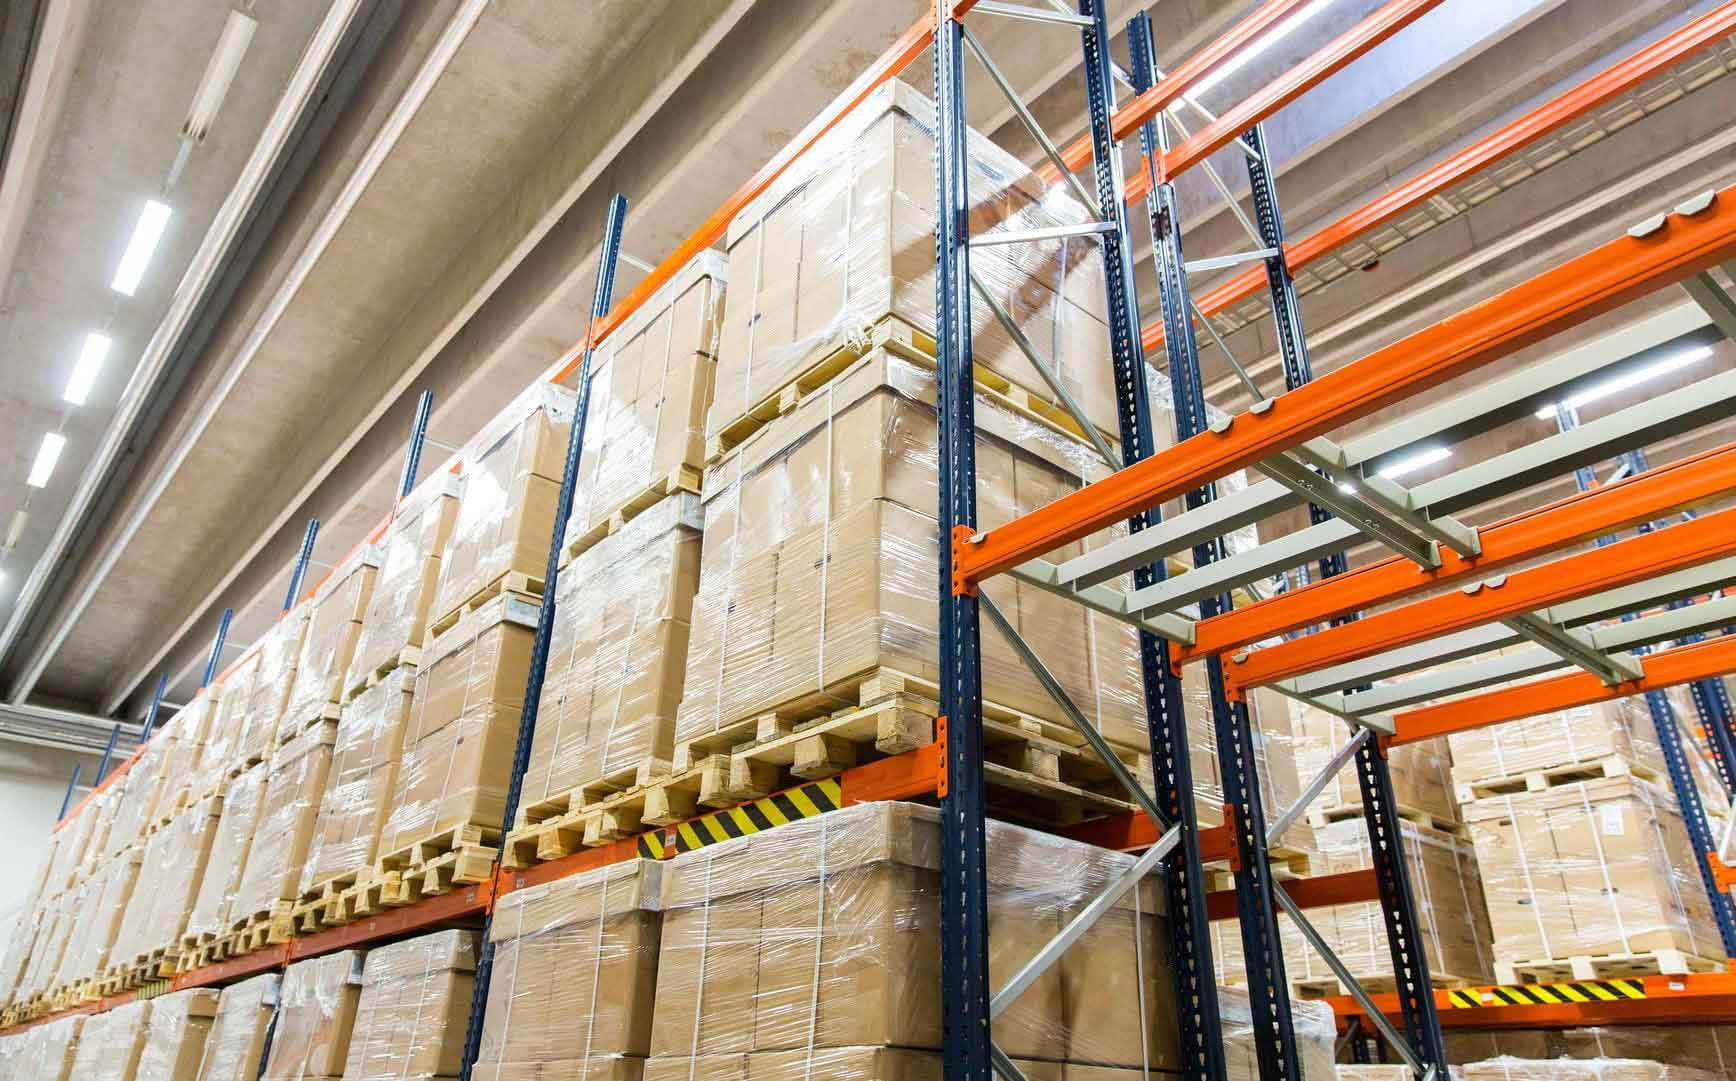 59094848 - logistic, storage, shipment, industry and manufacturing concept - cargo boxes storing at warehouse shelves